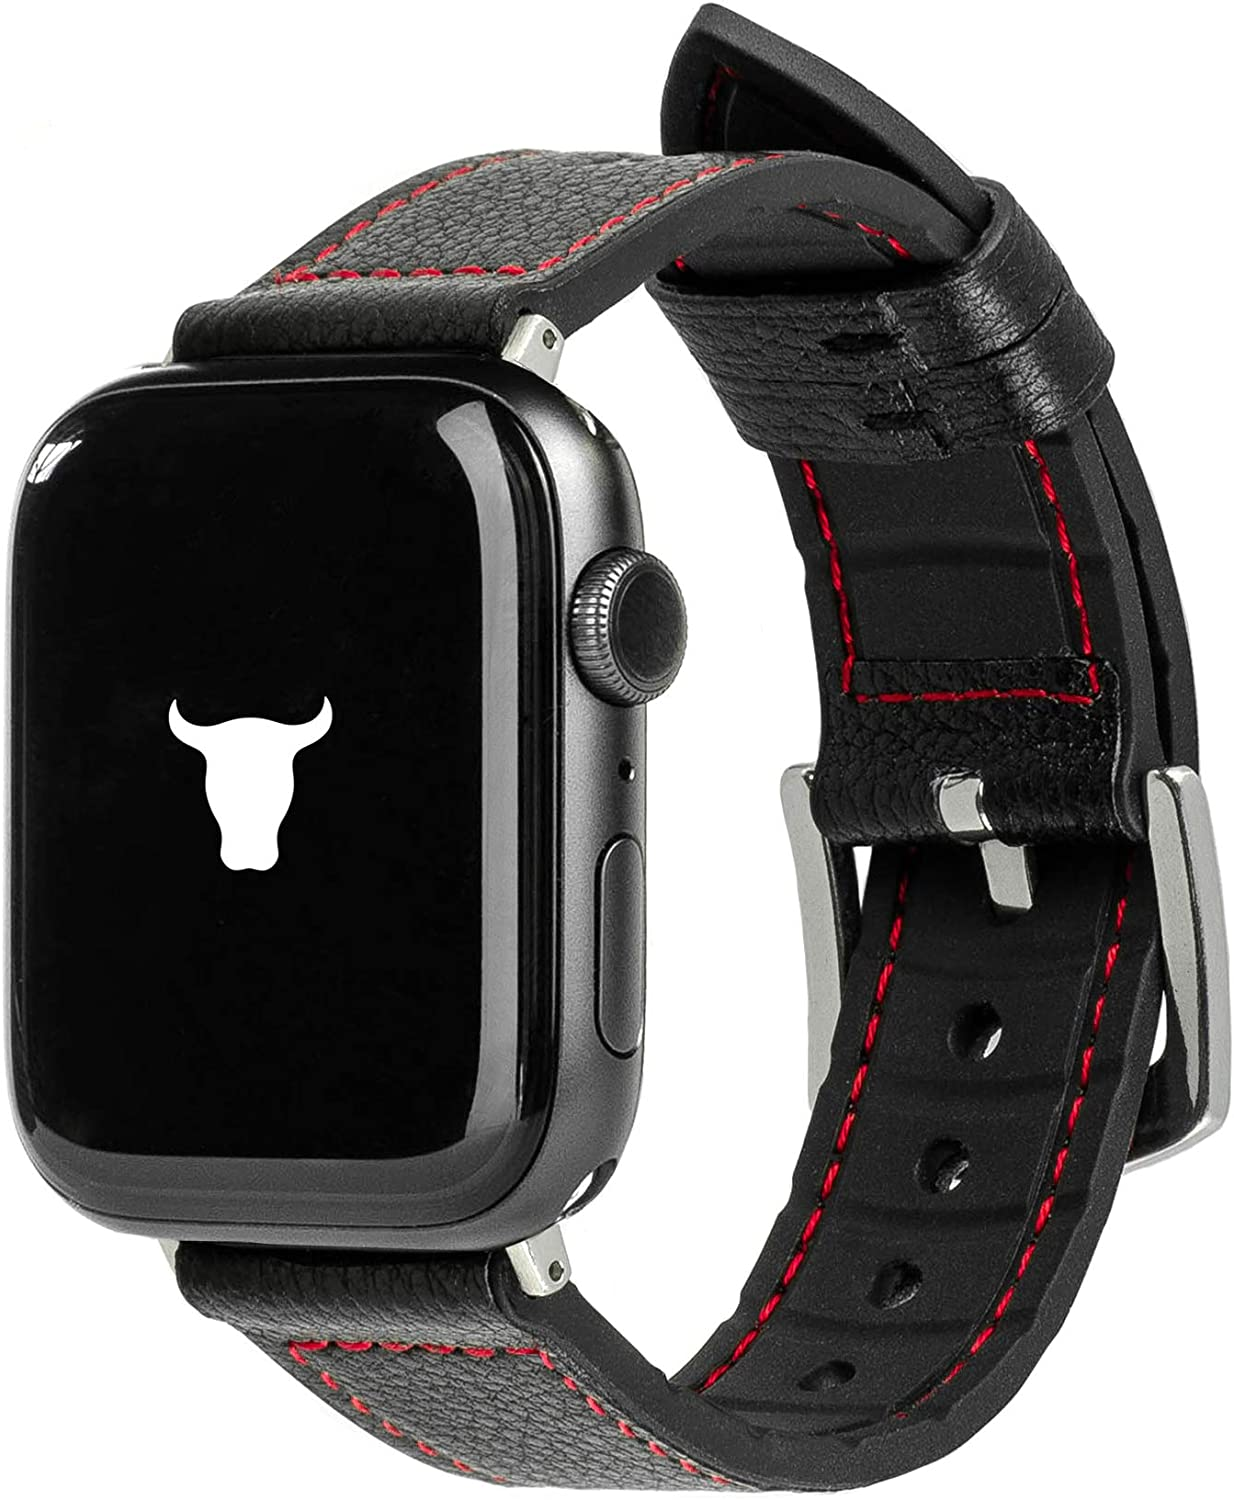 TORRO Leather Watch Strap Compatible with Apple Watch with Brushed Silver Connector and Buckle (Black Silicone with Black Leather and Red Detail for 42mm / 44mm Apple Watch)